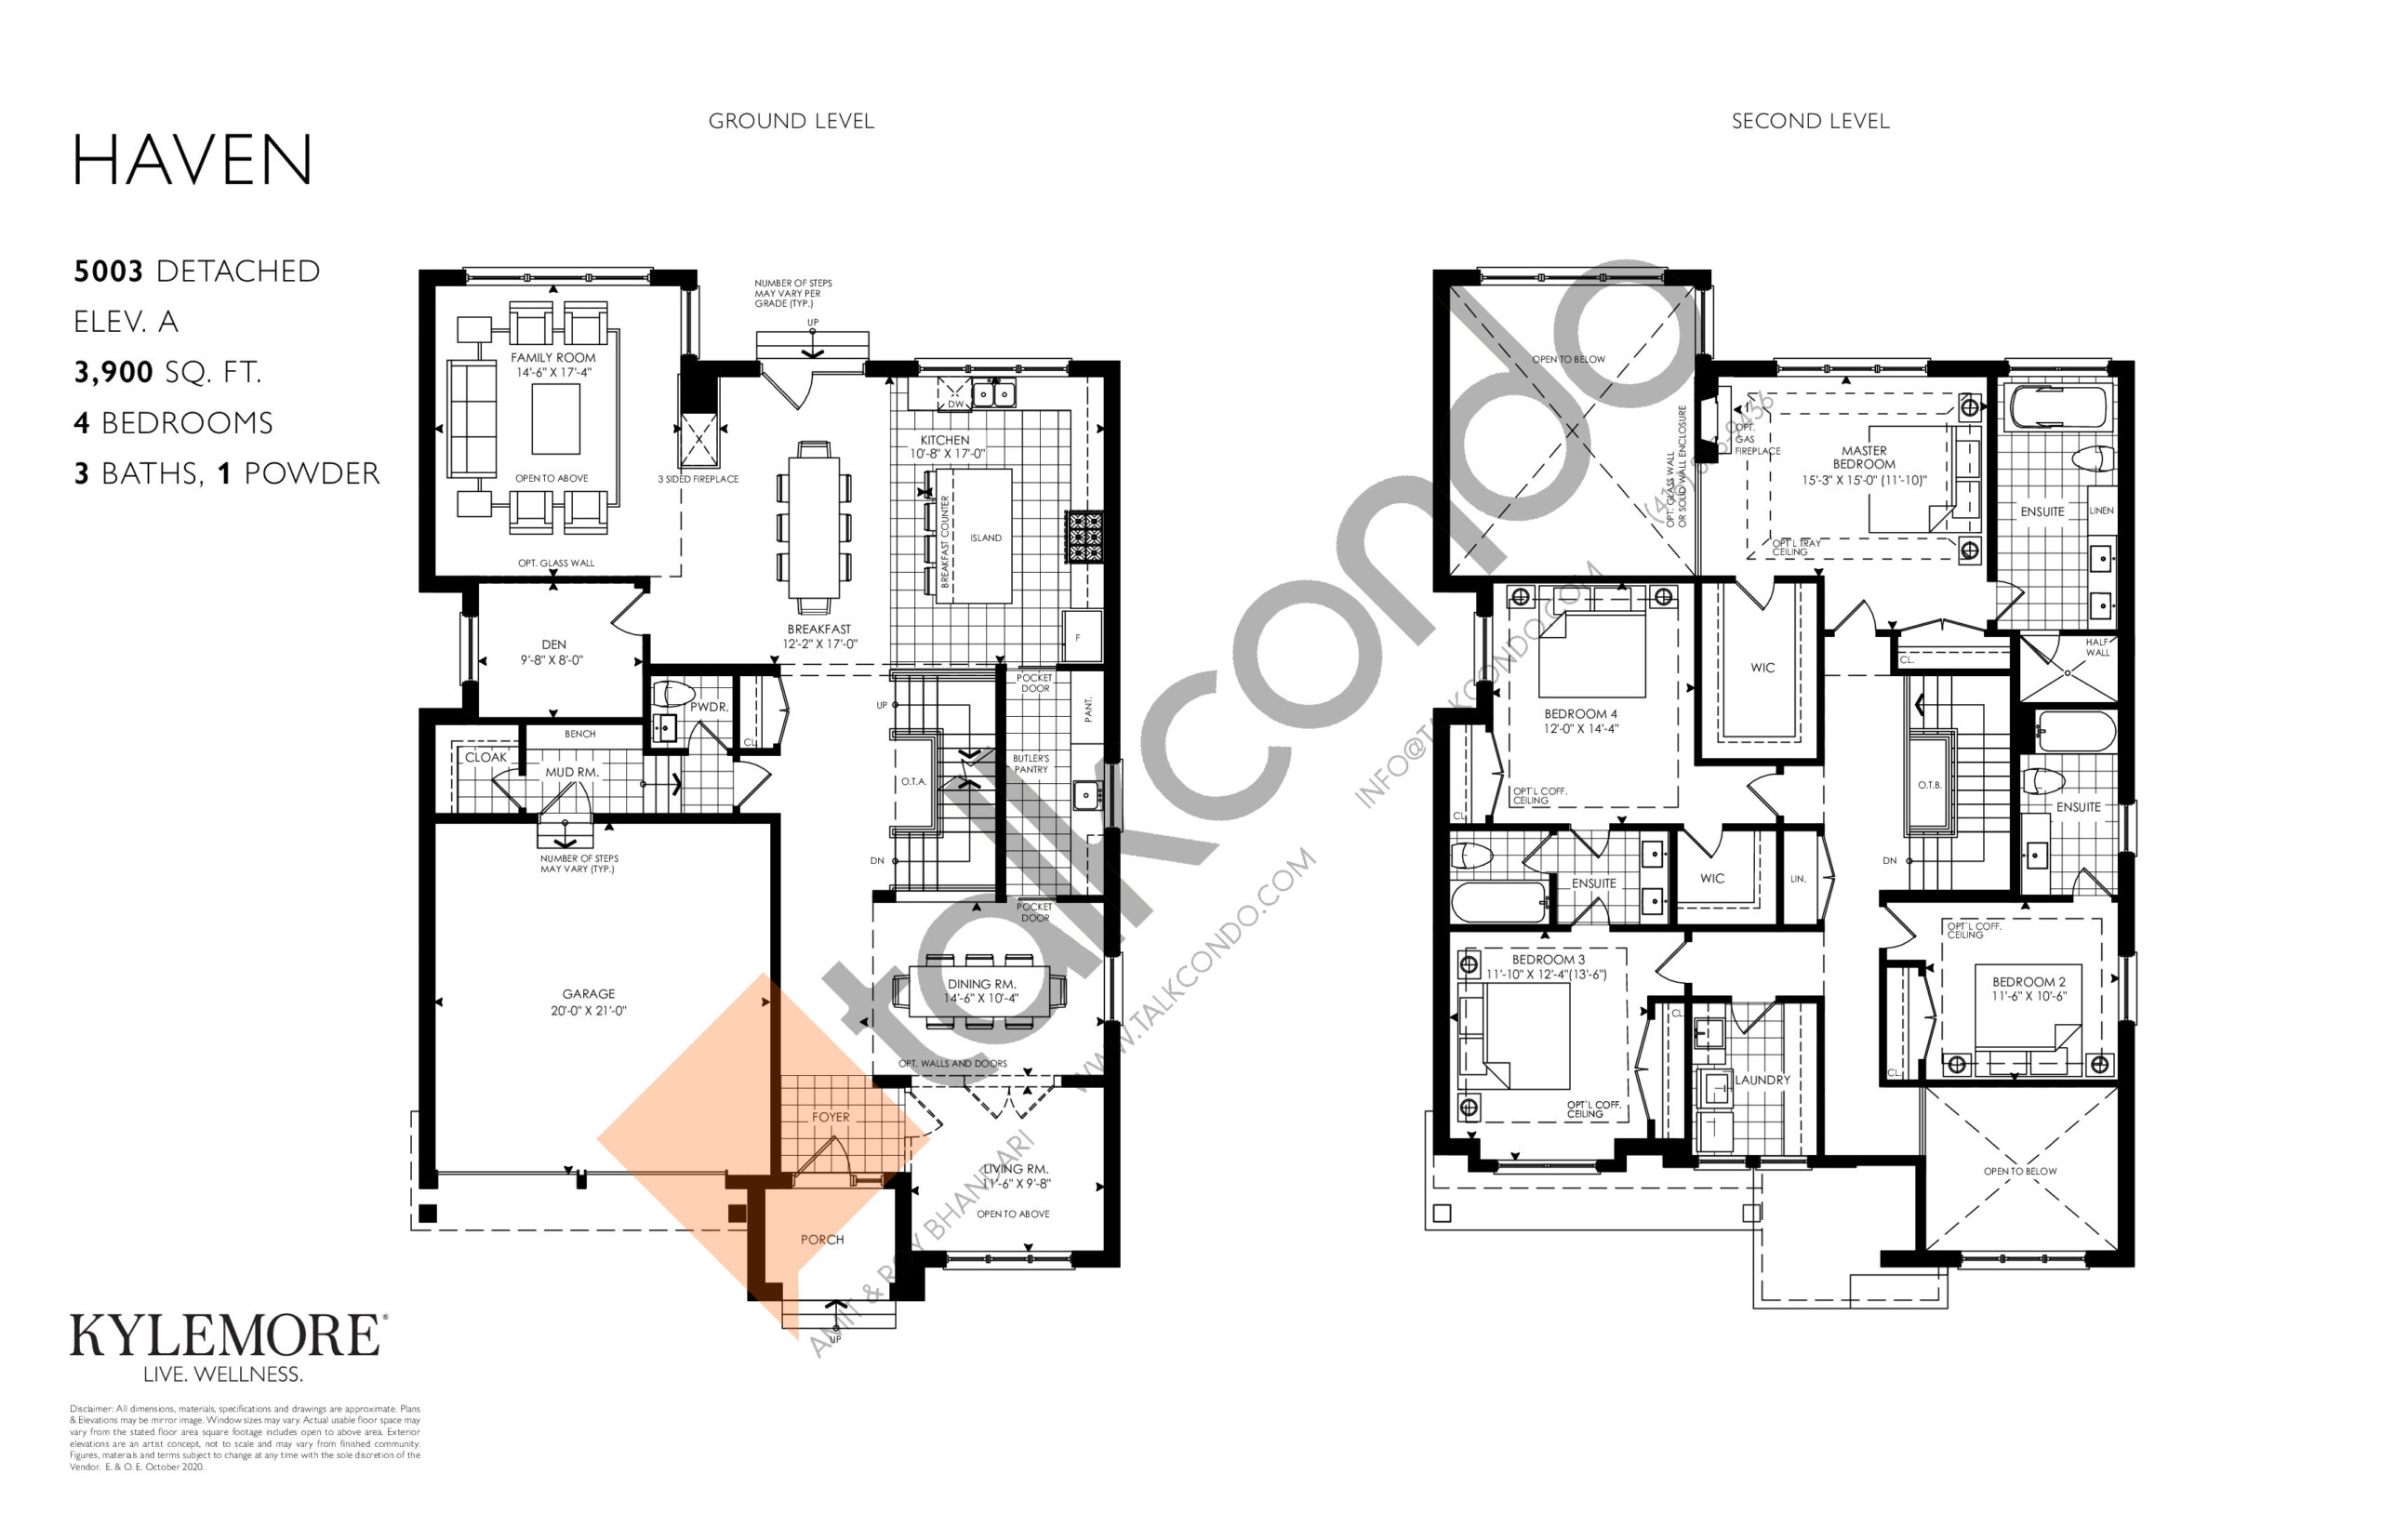 Haven - Elev. A Floor Plan at Angus Glen South Village - 3900 sq.ft